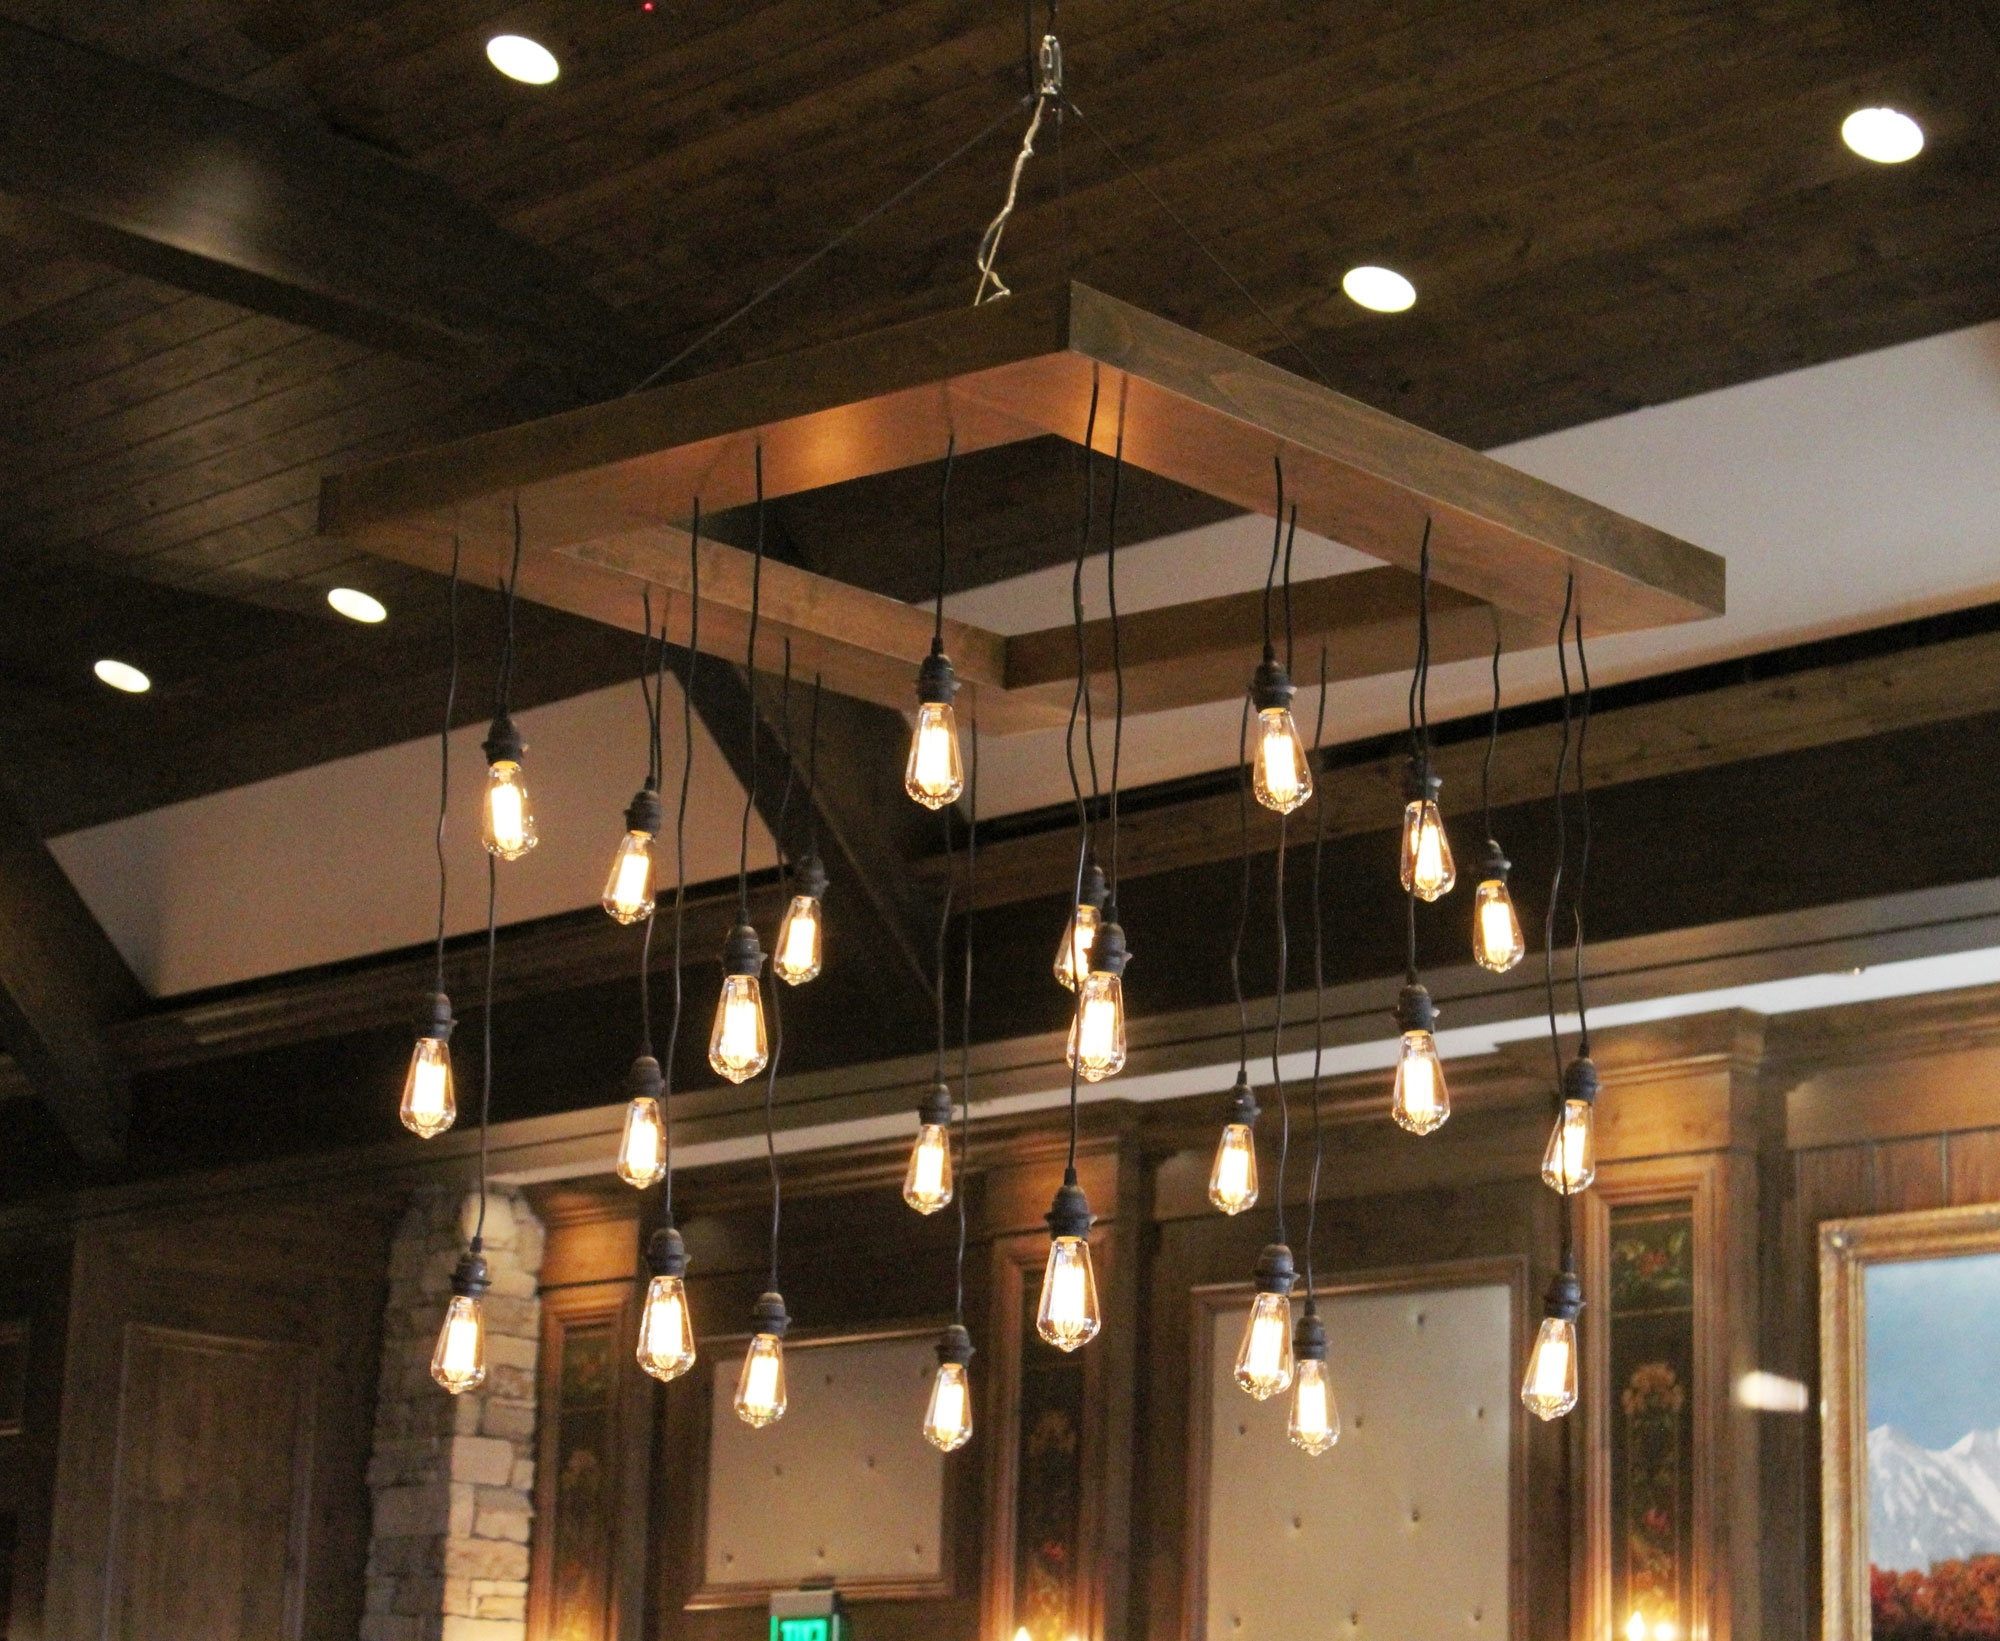 Chandelier For Restaurant With Regard To Popular Bulb Chandelier (View 5 of 20)